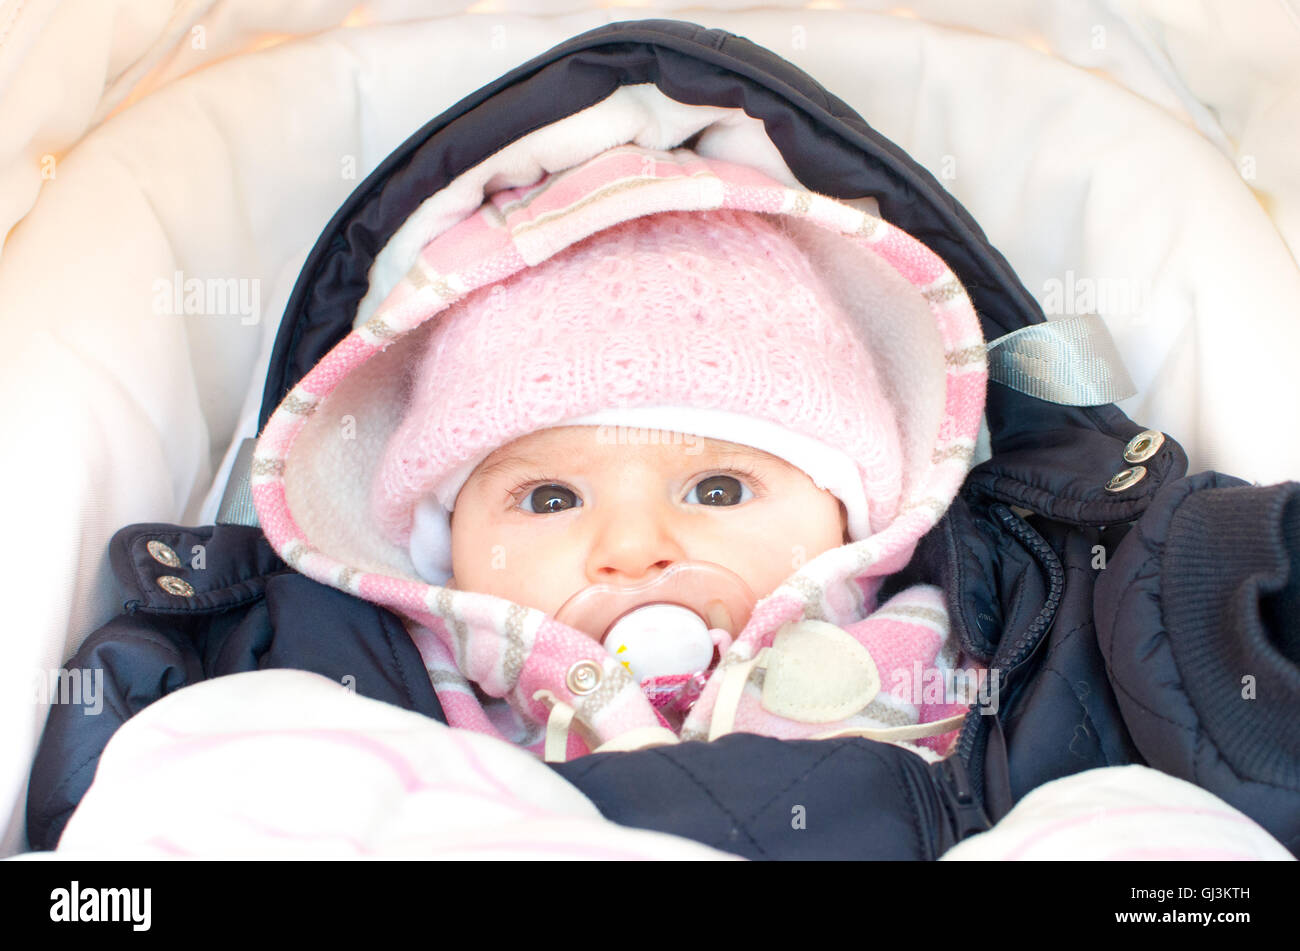 baby gekleidet f r den winter im kinderwagen stockfoto bild 114407457 alamy. Black Bedroom Furniture Sets. Home Design Ideas